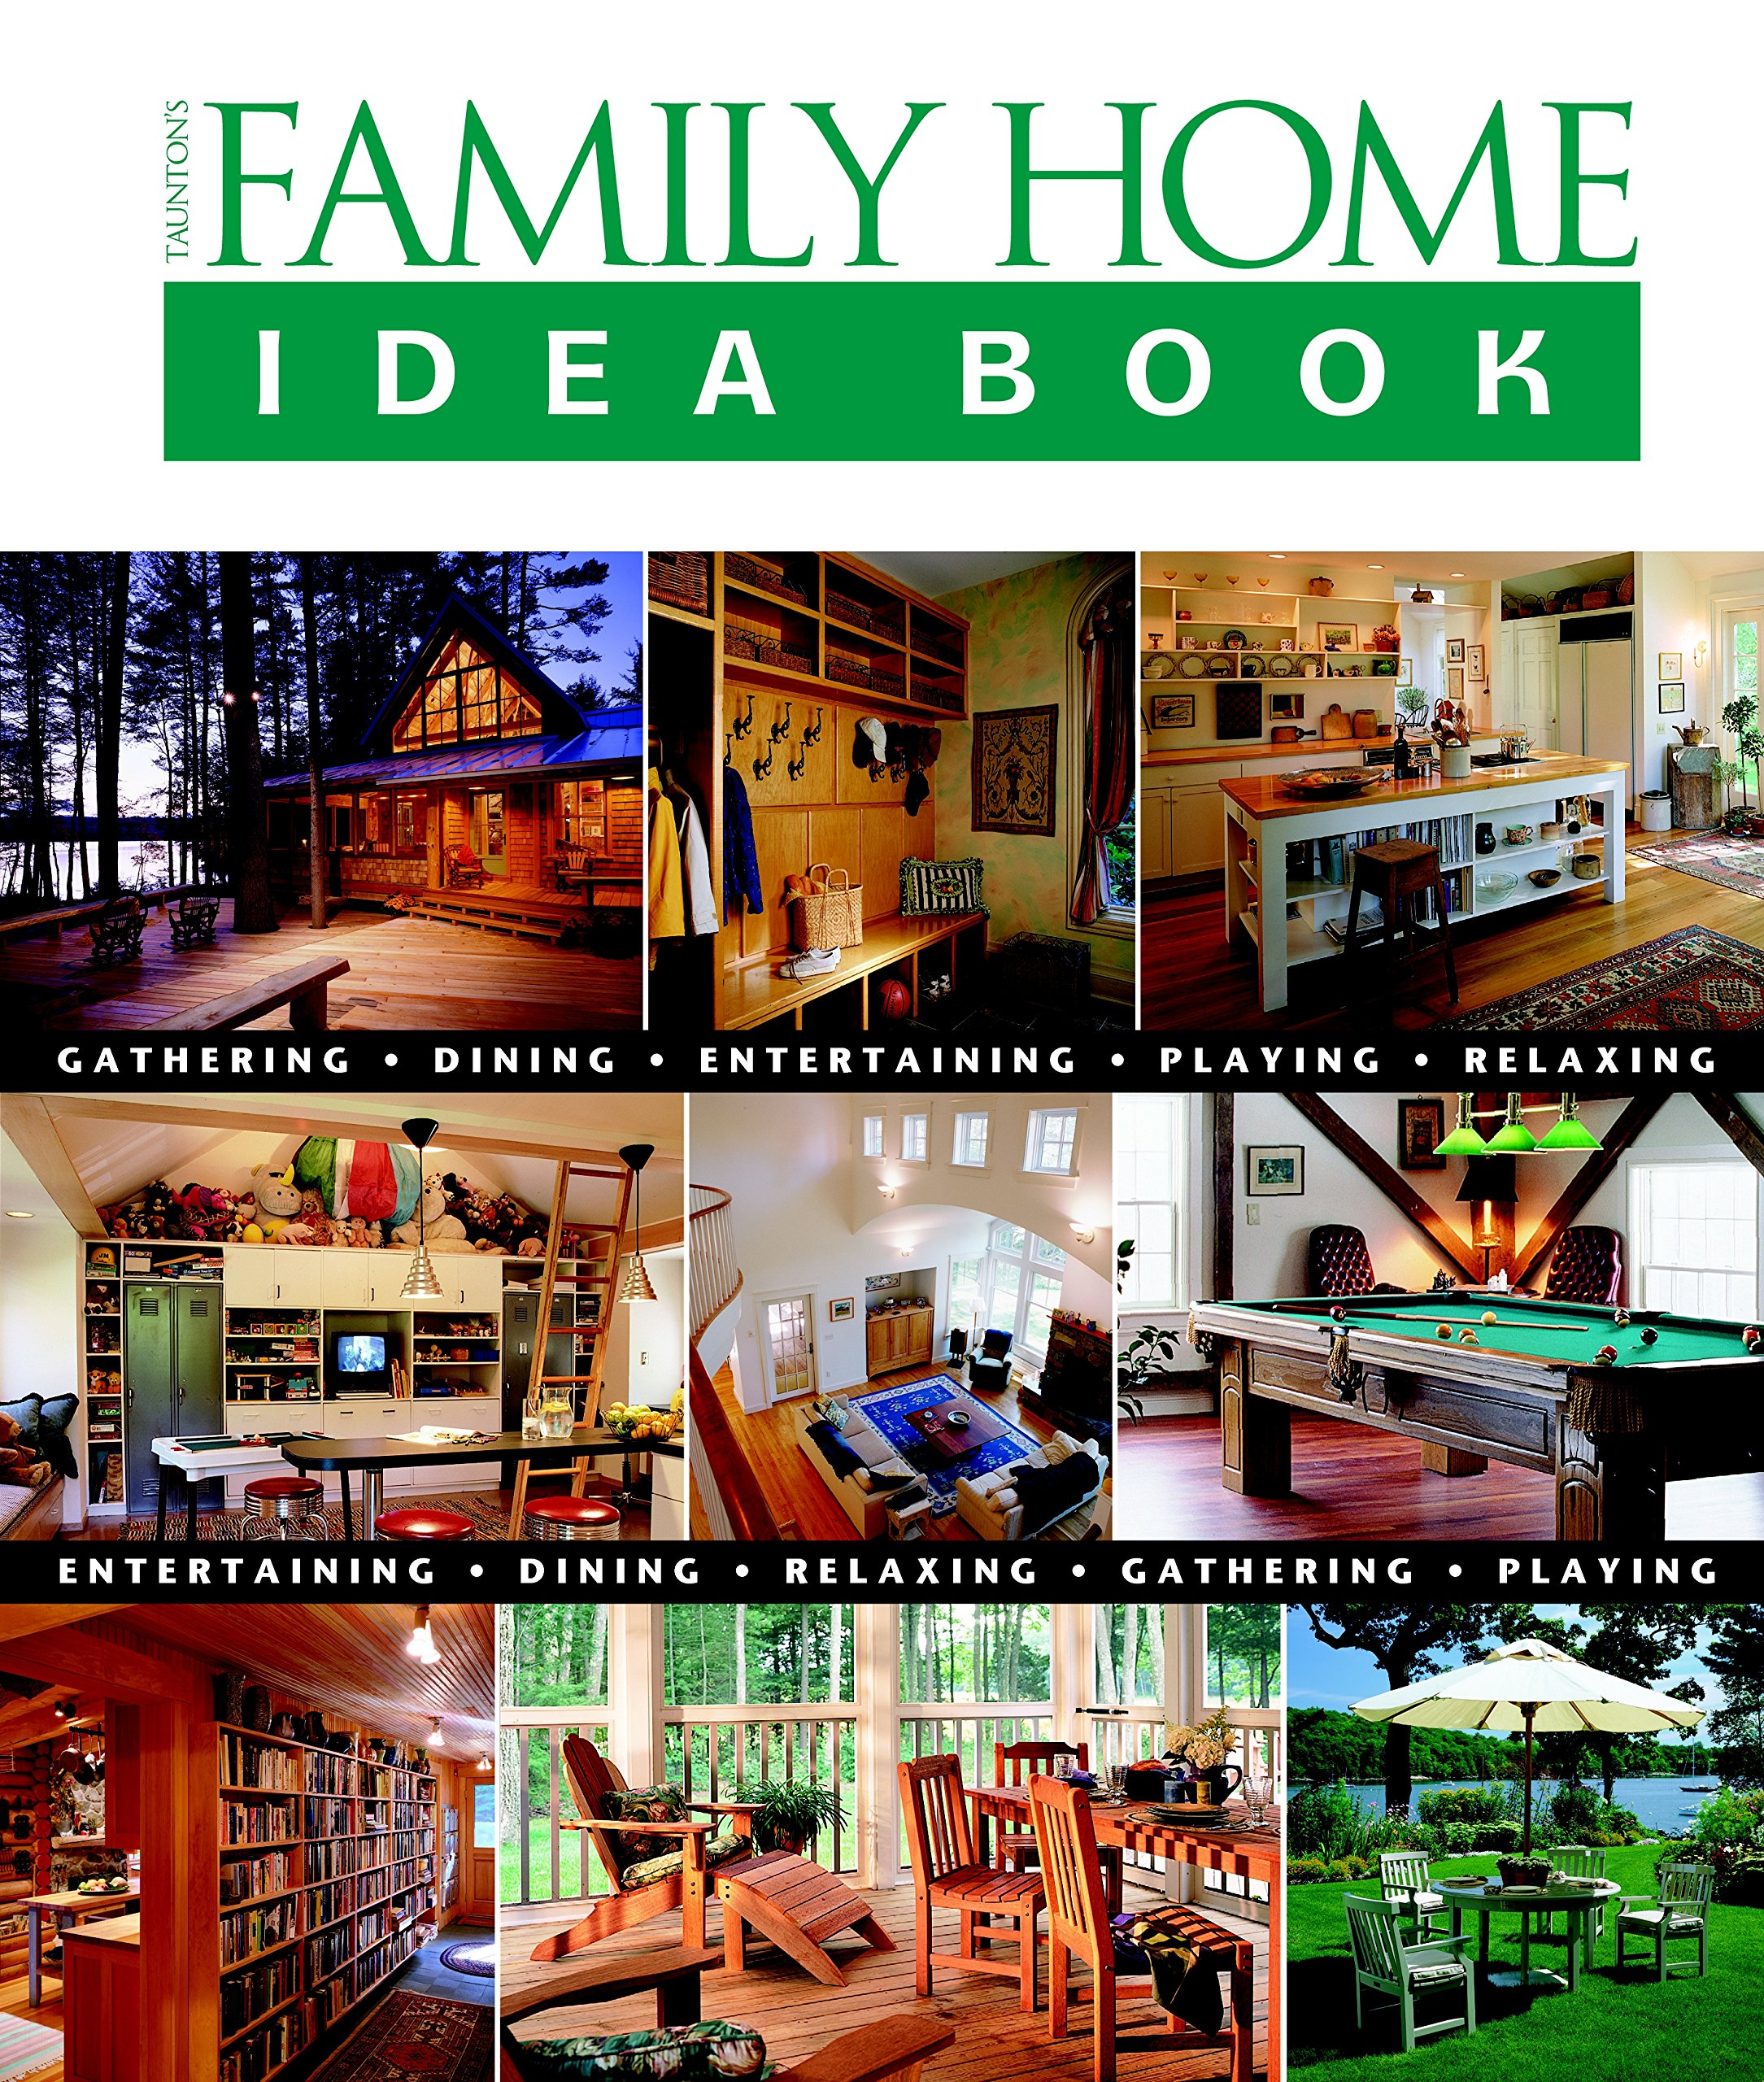 Tauntons Family Home Idea Book Gathering Dining